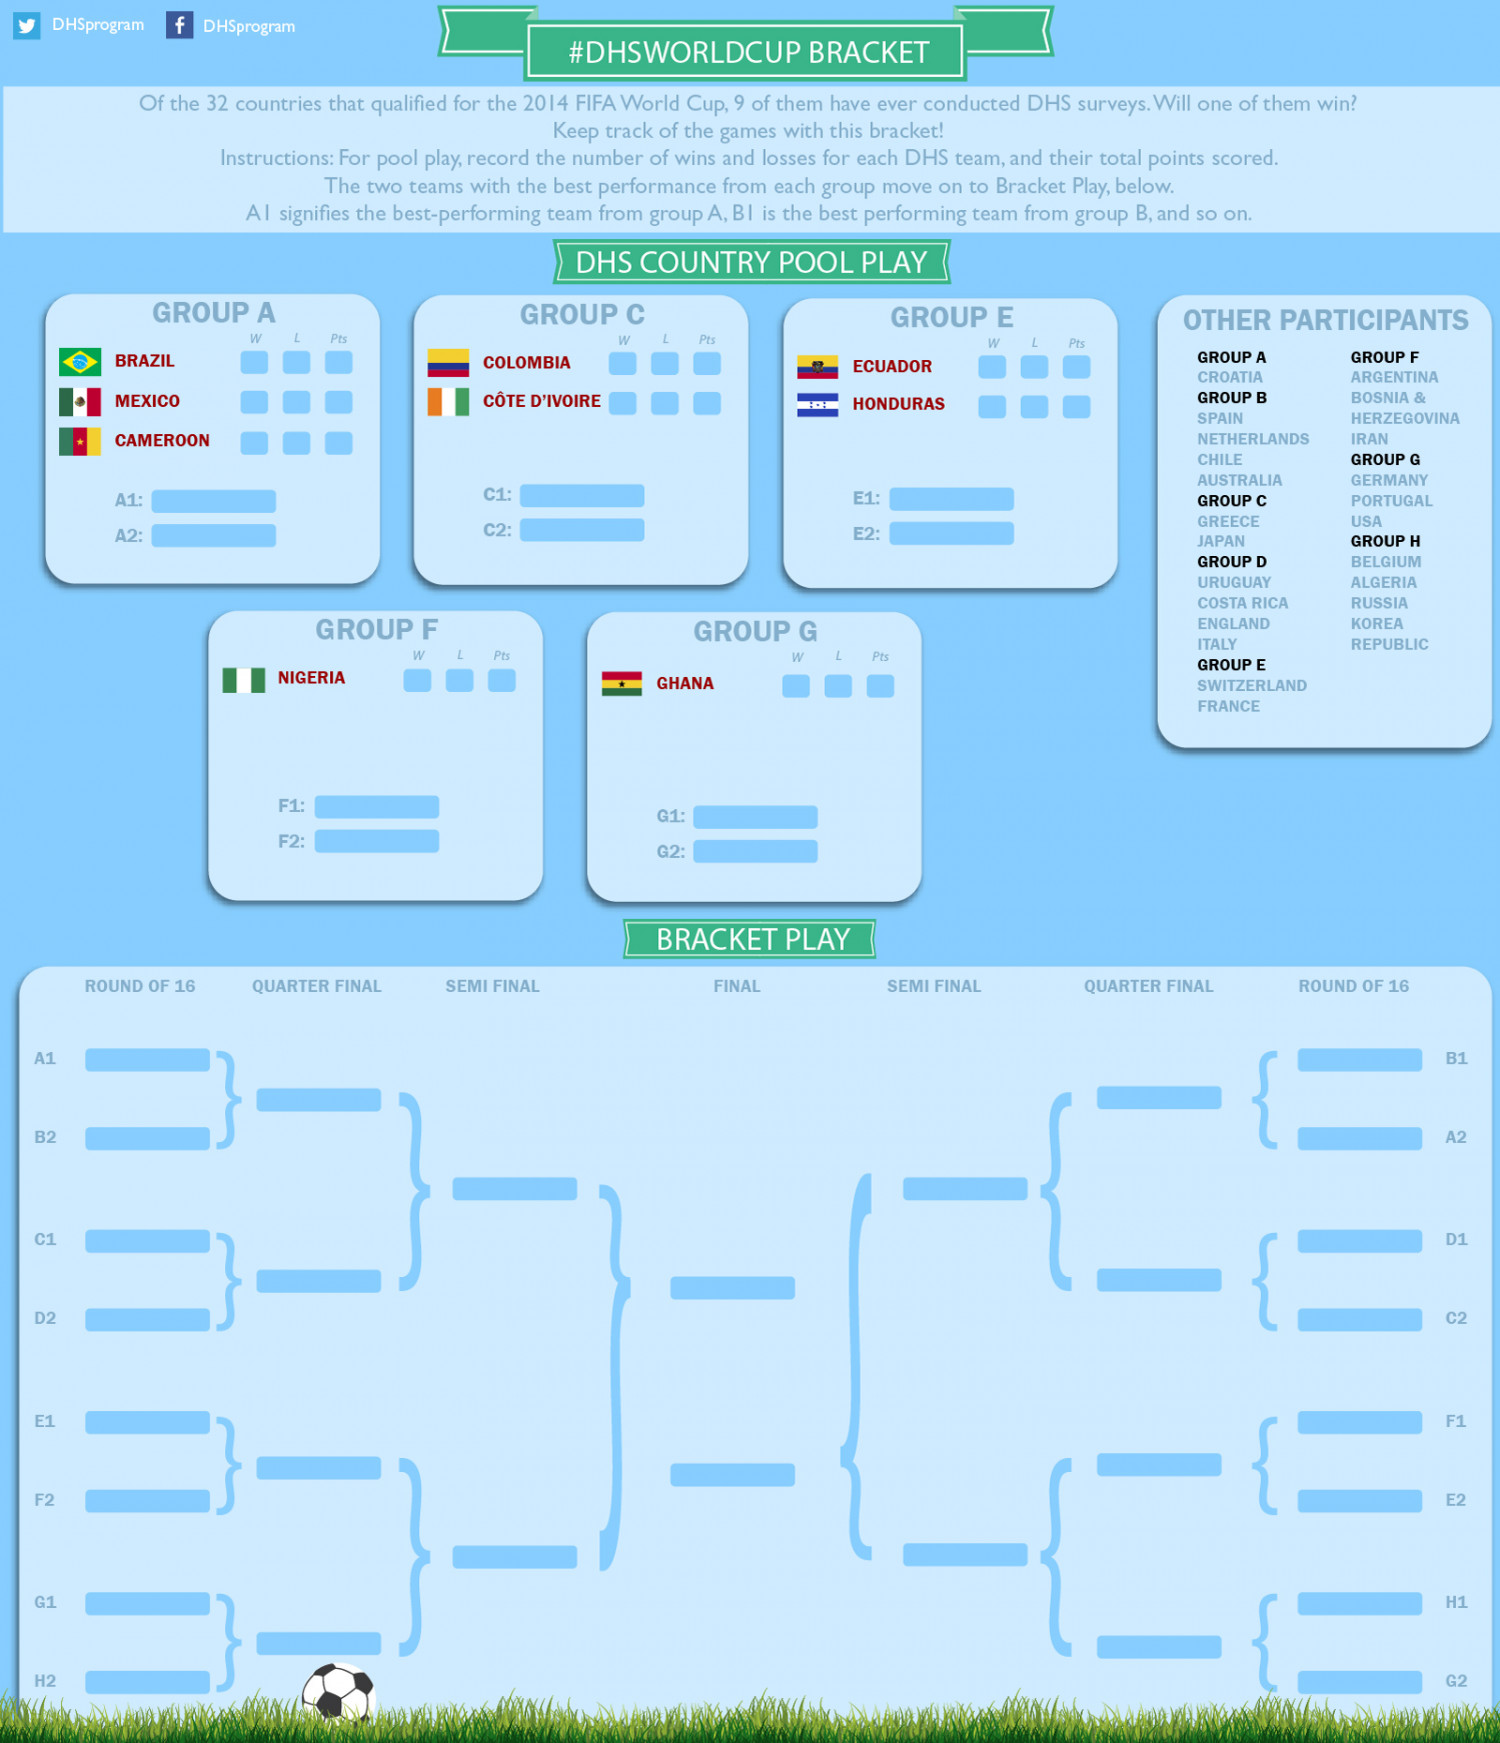 #DHSWorldCup Bracket Infographic